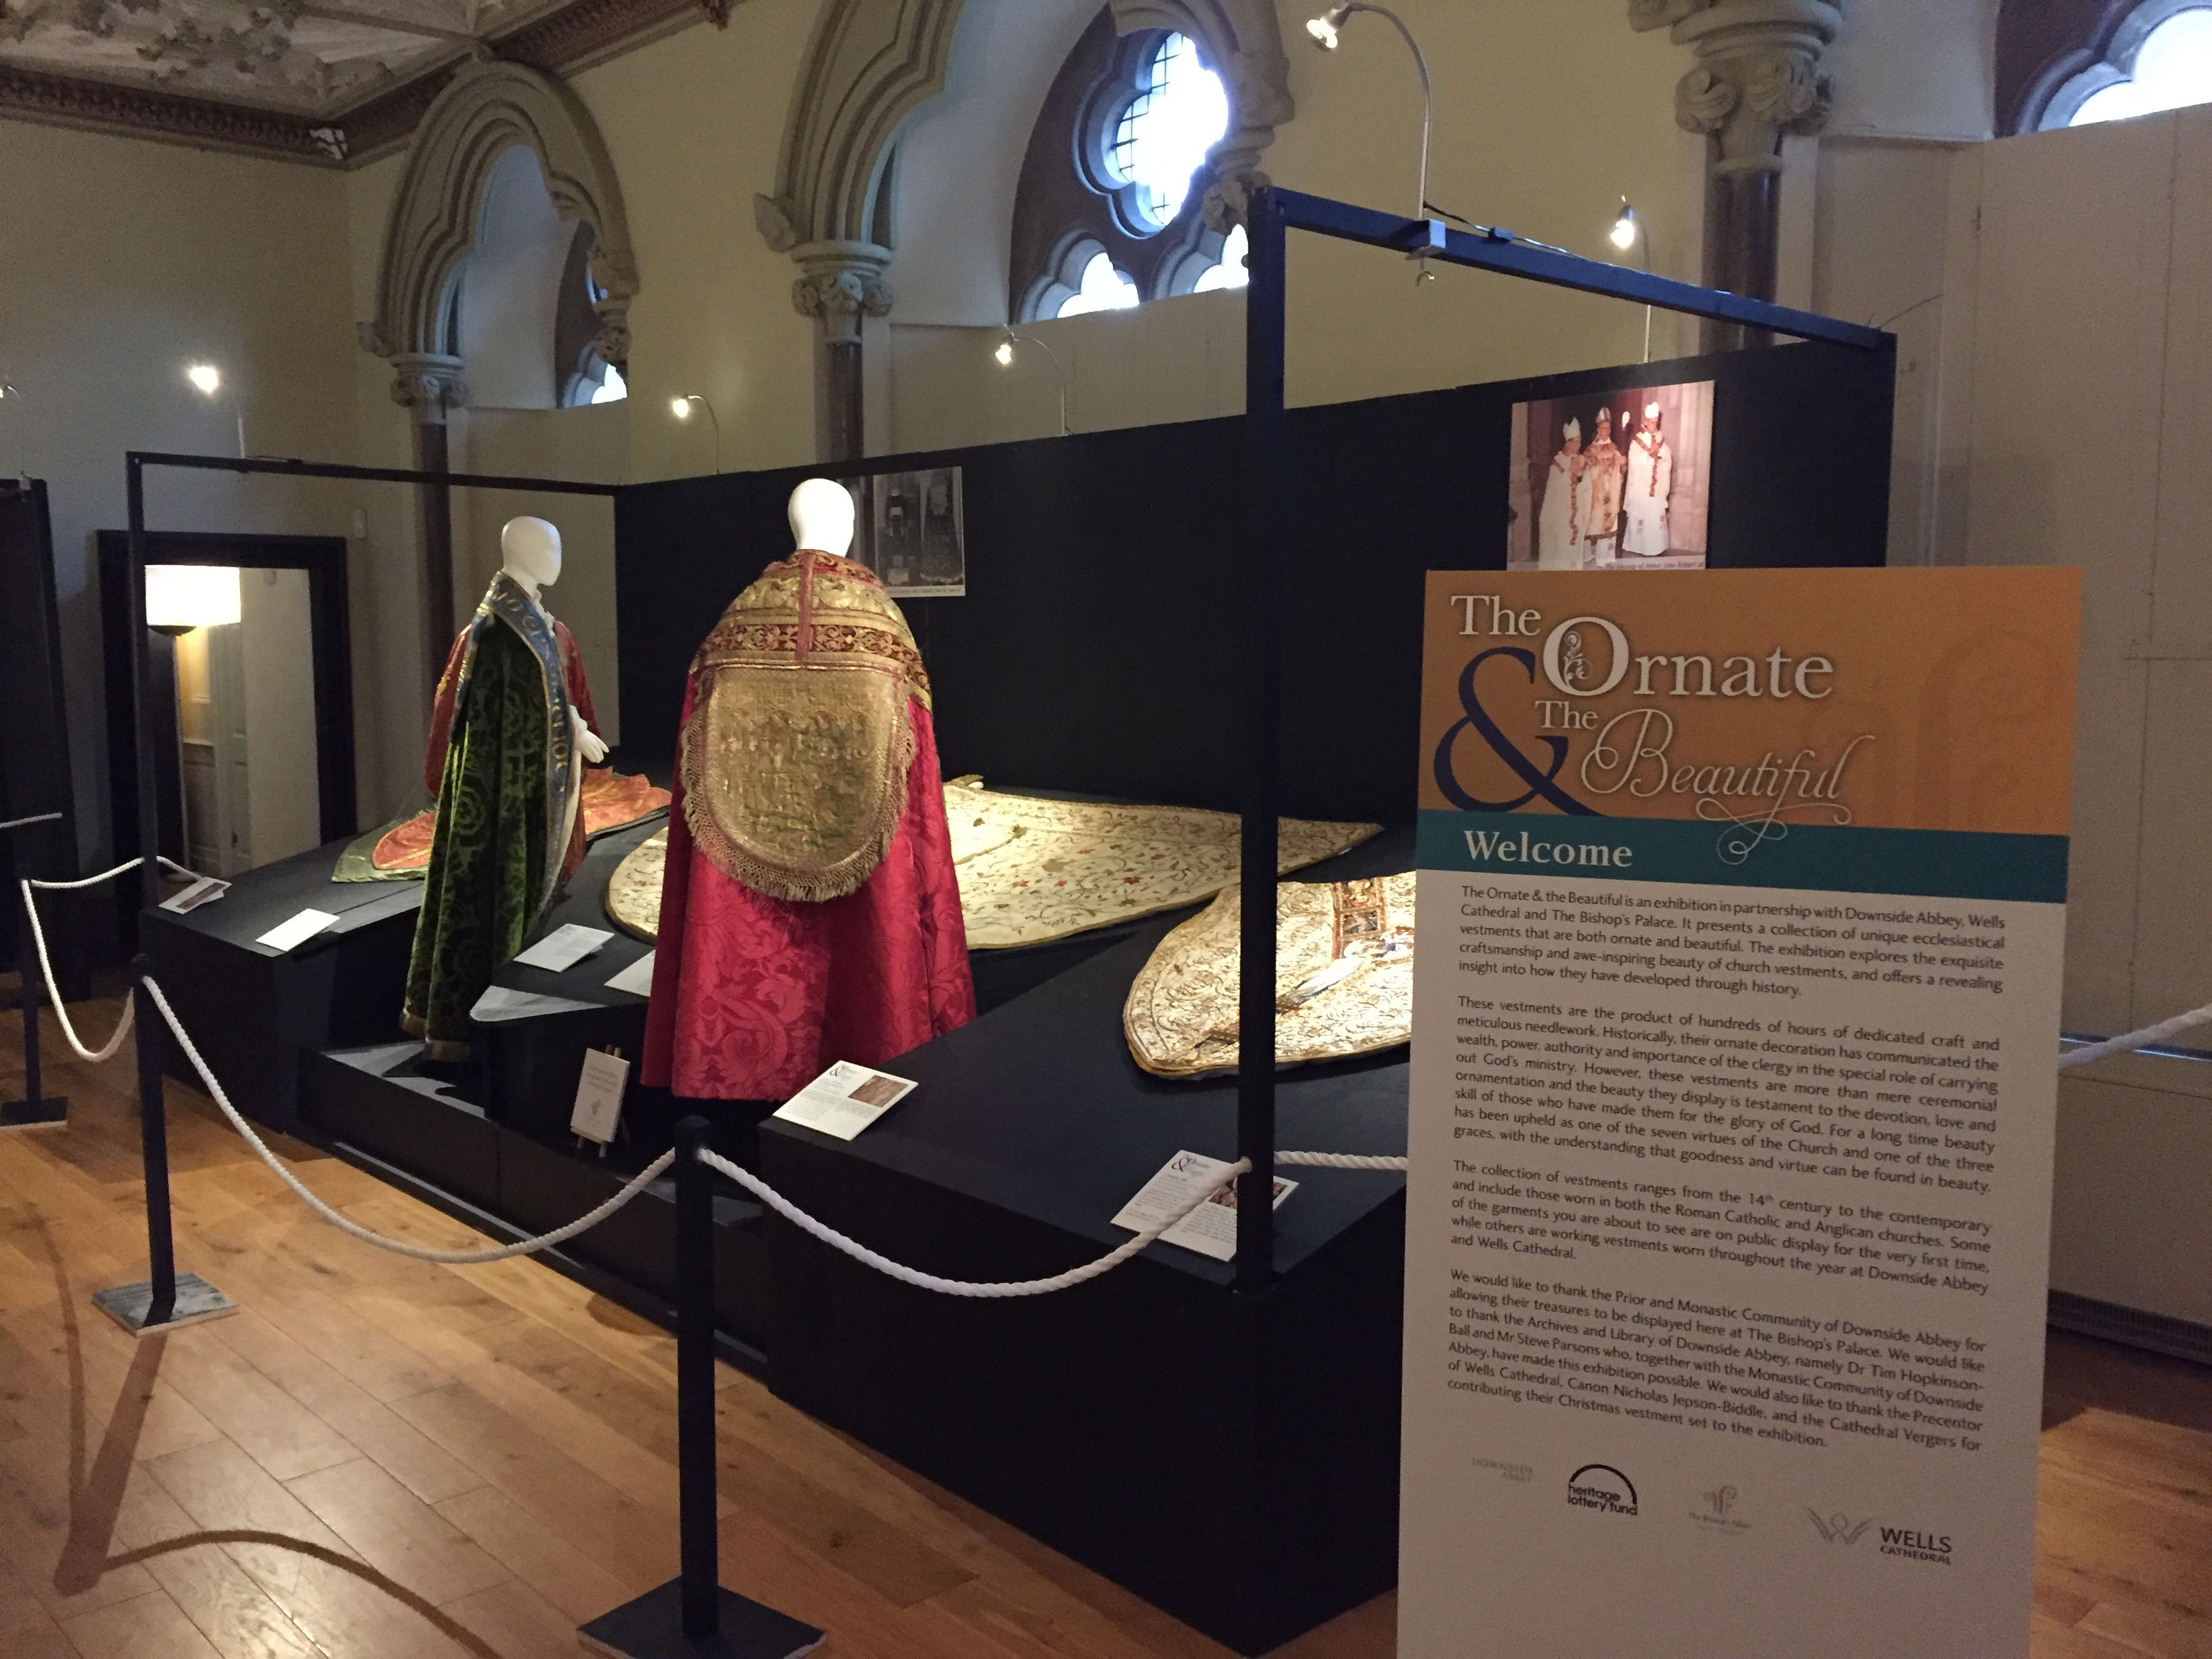 Downside Abbey exhibition